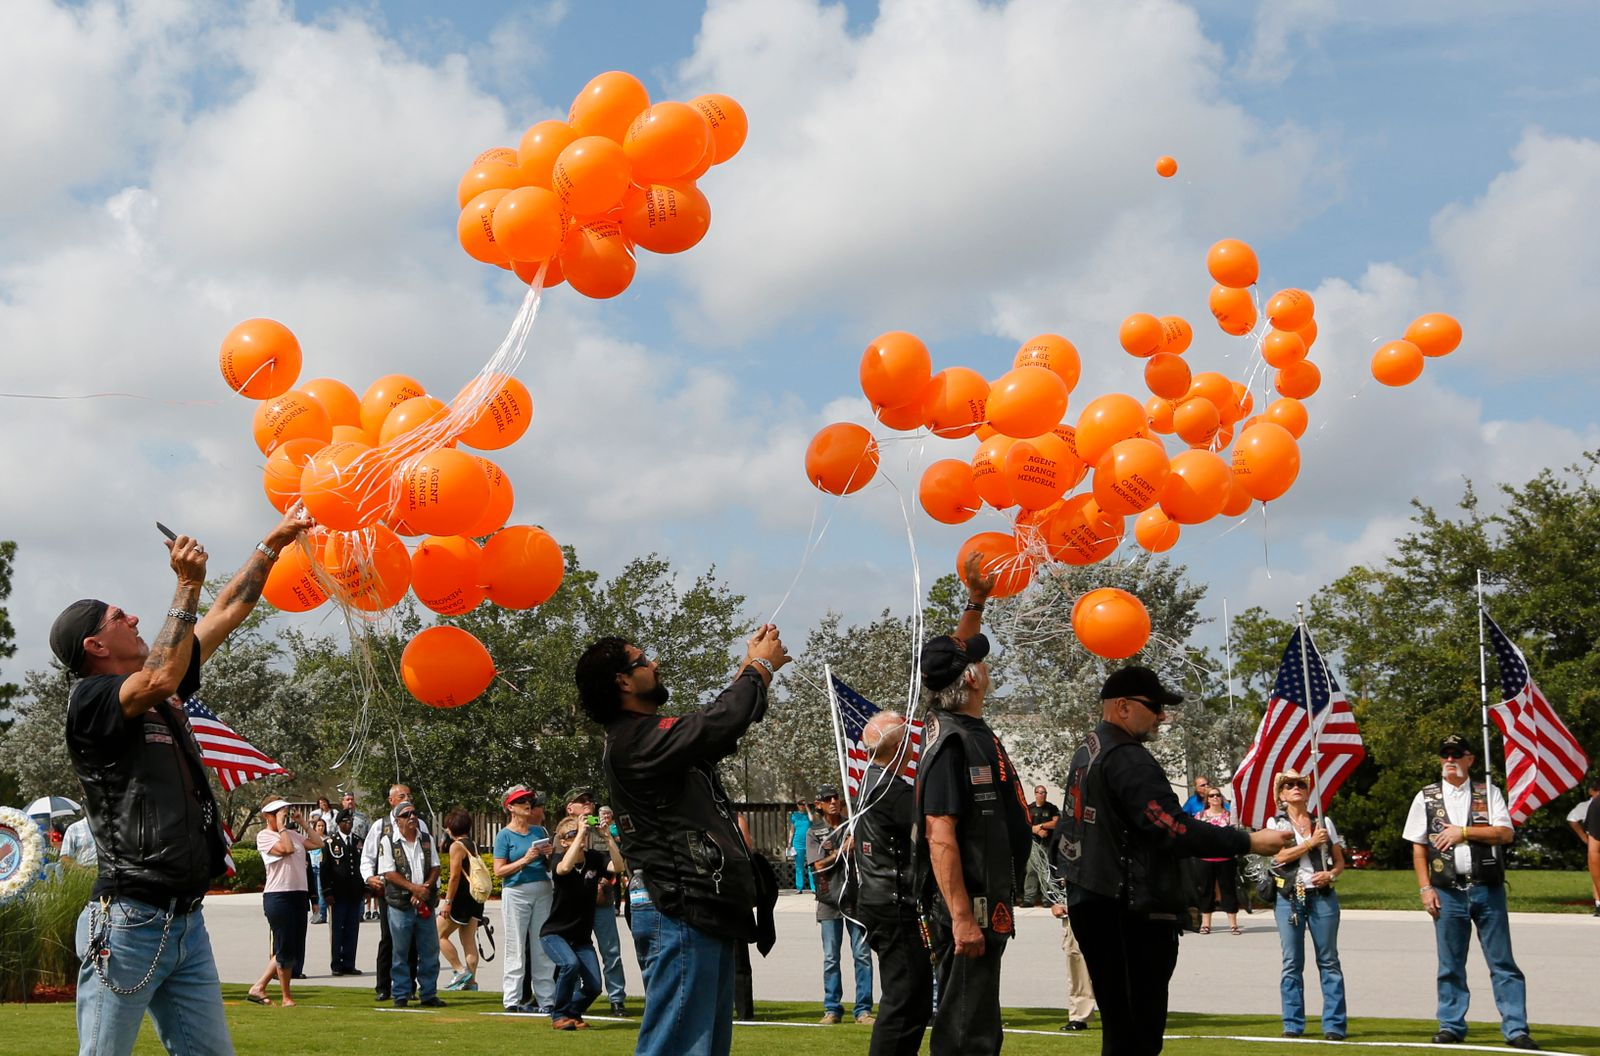 Members of a veteran's group release balloons for the Agent Orange Memorial for those affected by the chemical agent in Vietnam at a Memorial Day Ceremony at the South Florida National Cemetery in Lake Worth